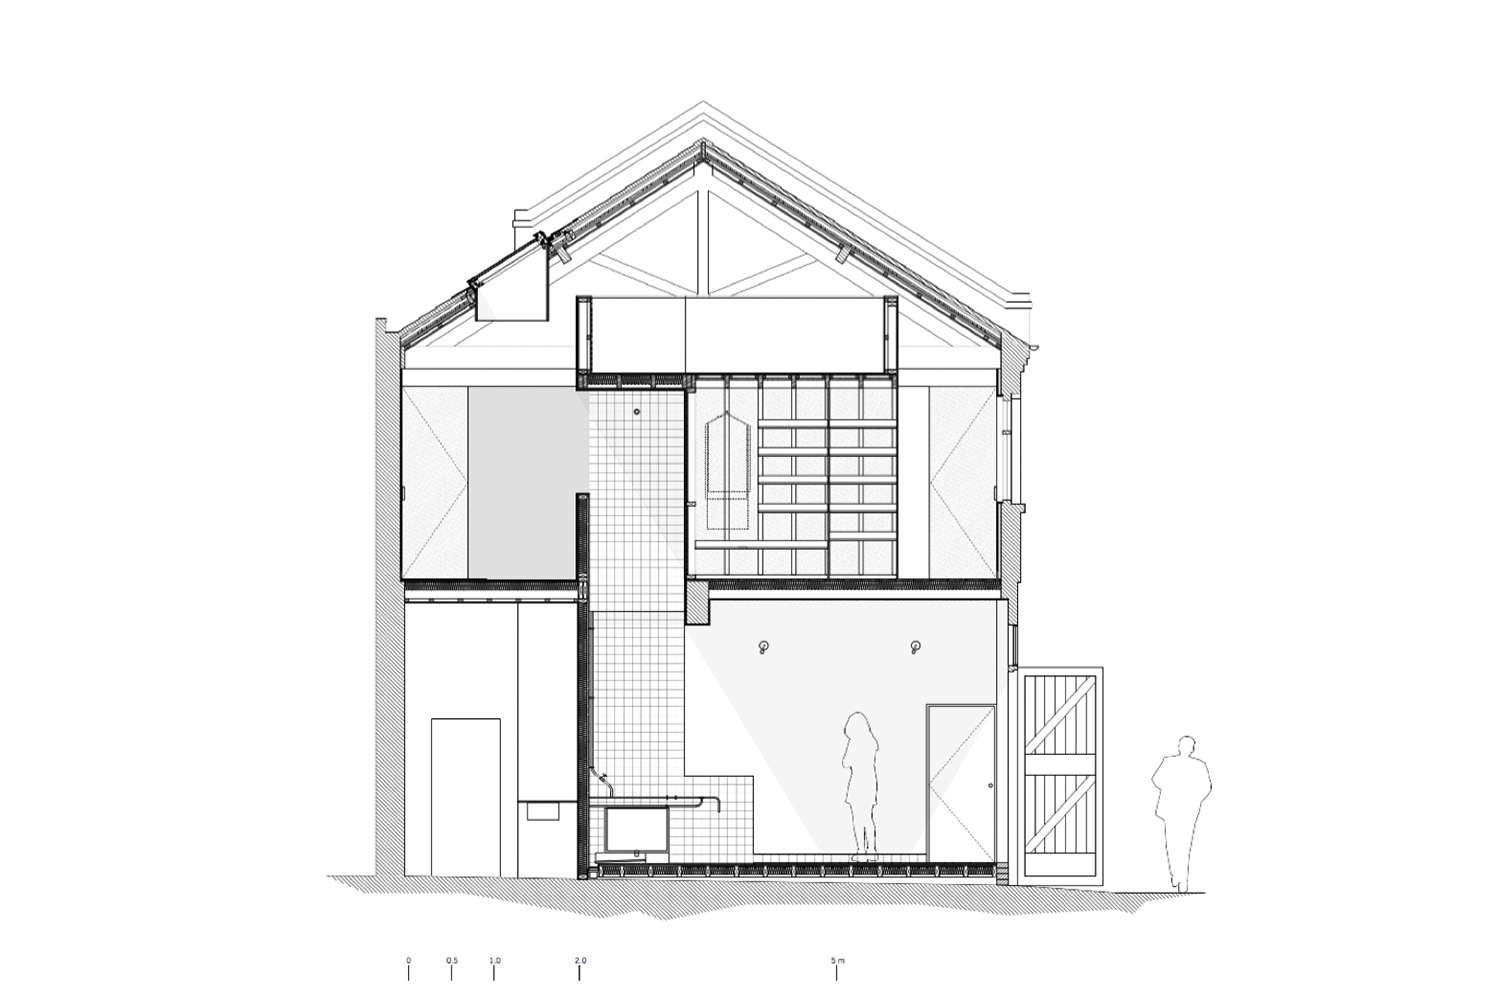 A drawing of the house shows the back room storage, the bathhouse, and its chimney-like space to the second floor, and the upstairs bathroom and closet.